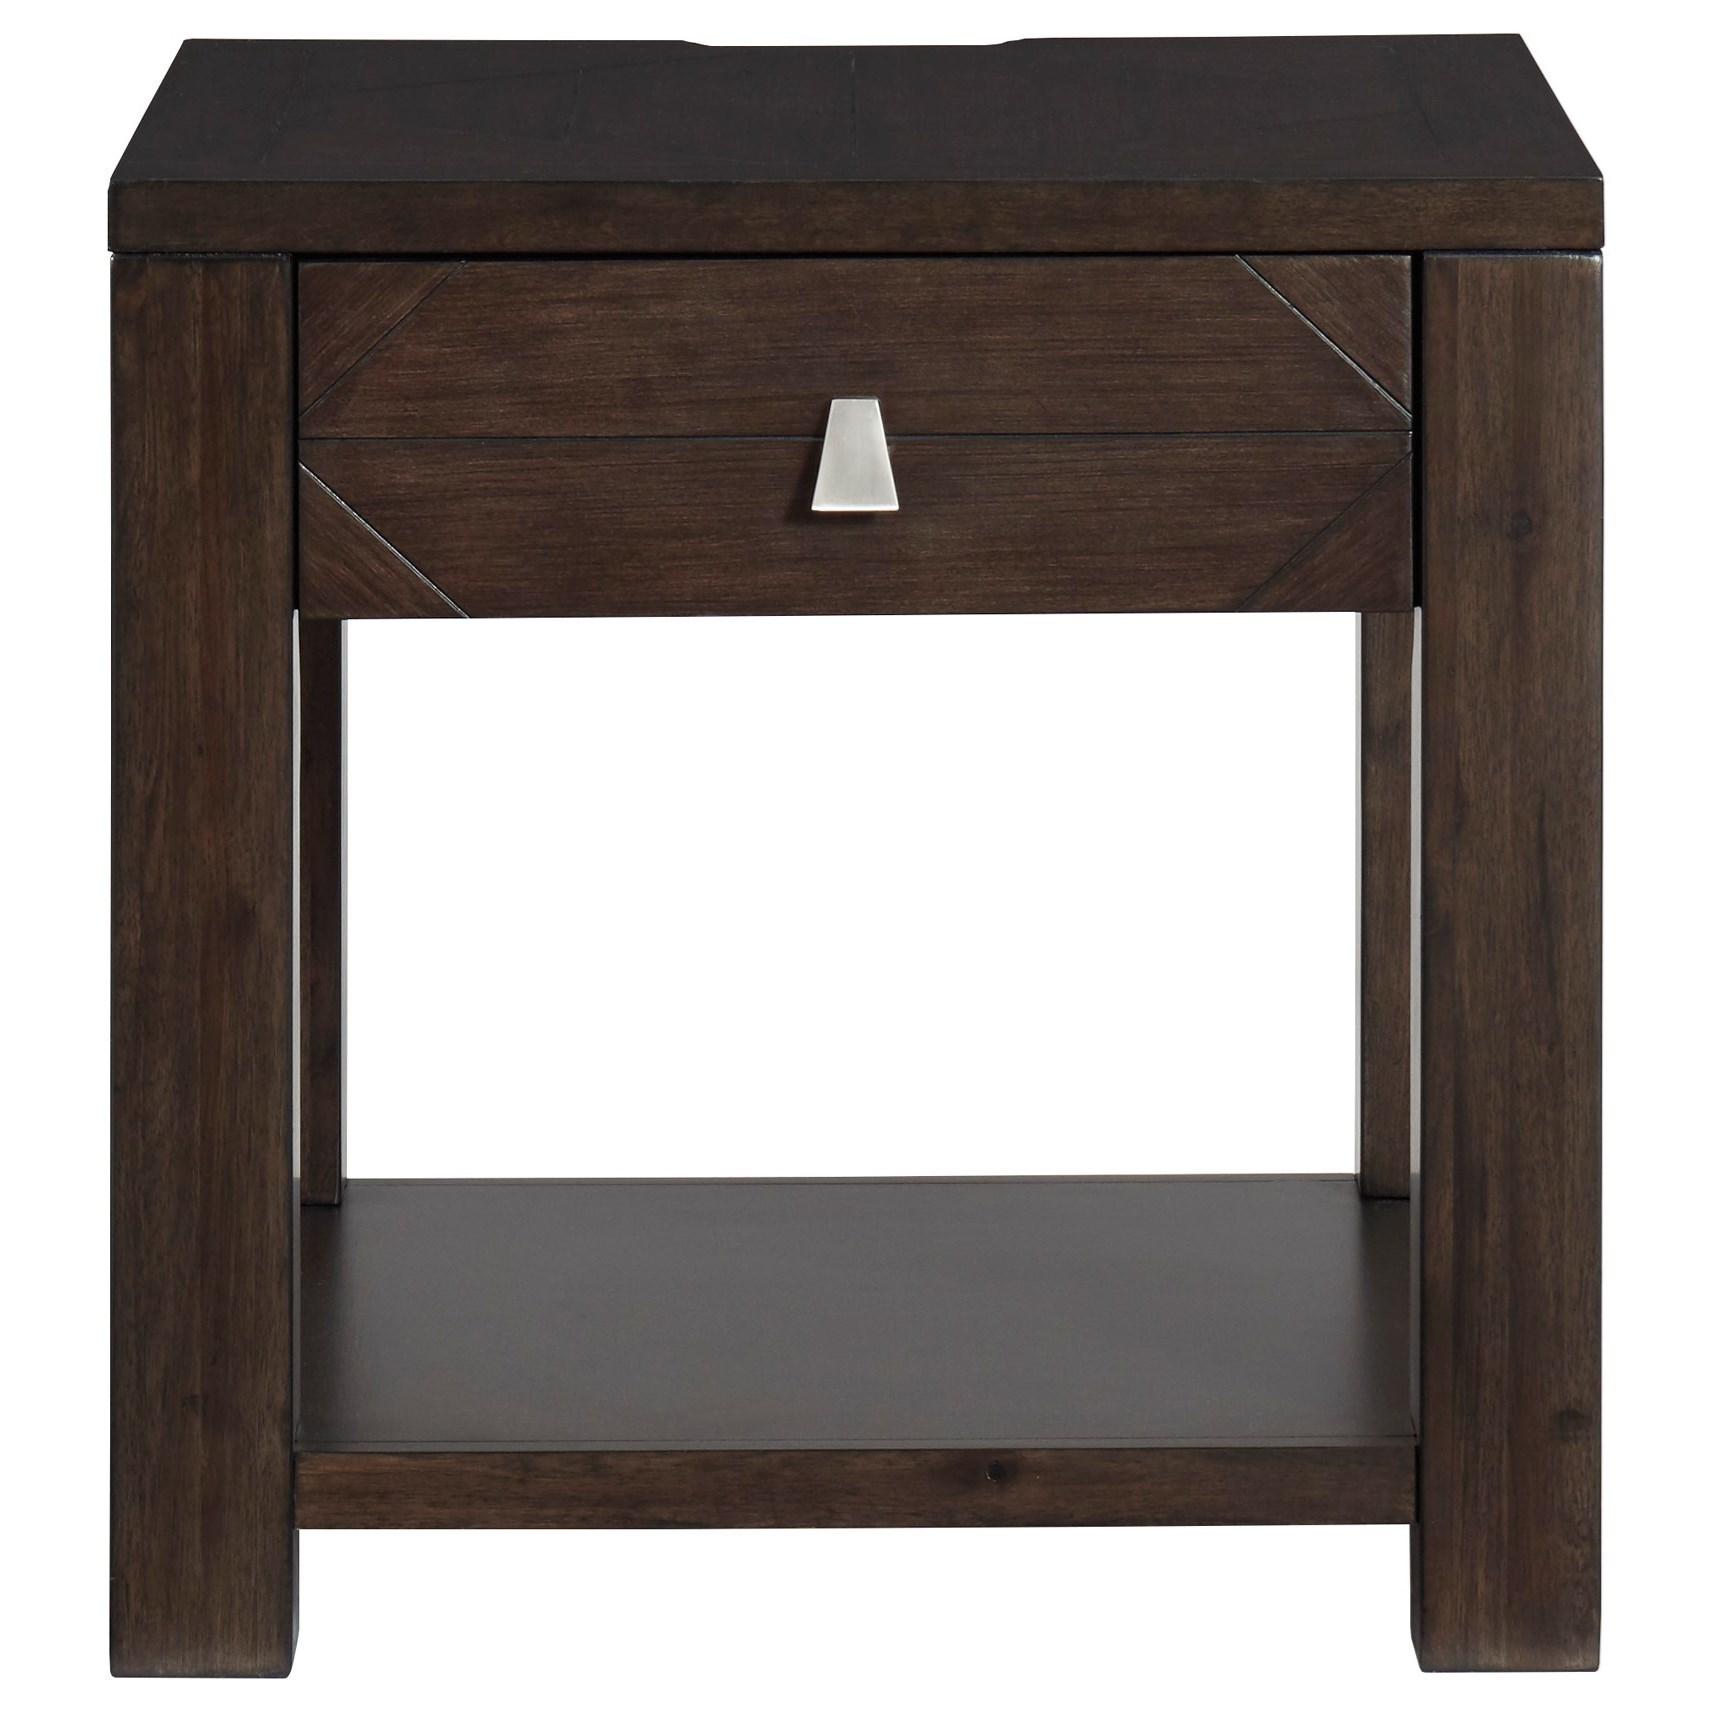 Tariland Square End Table by Signature Design by Ashley at Beck's Furniture